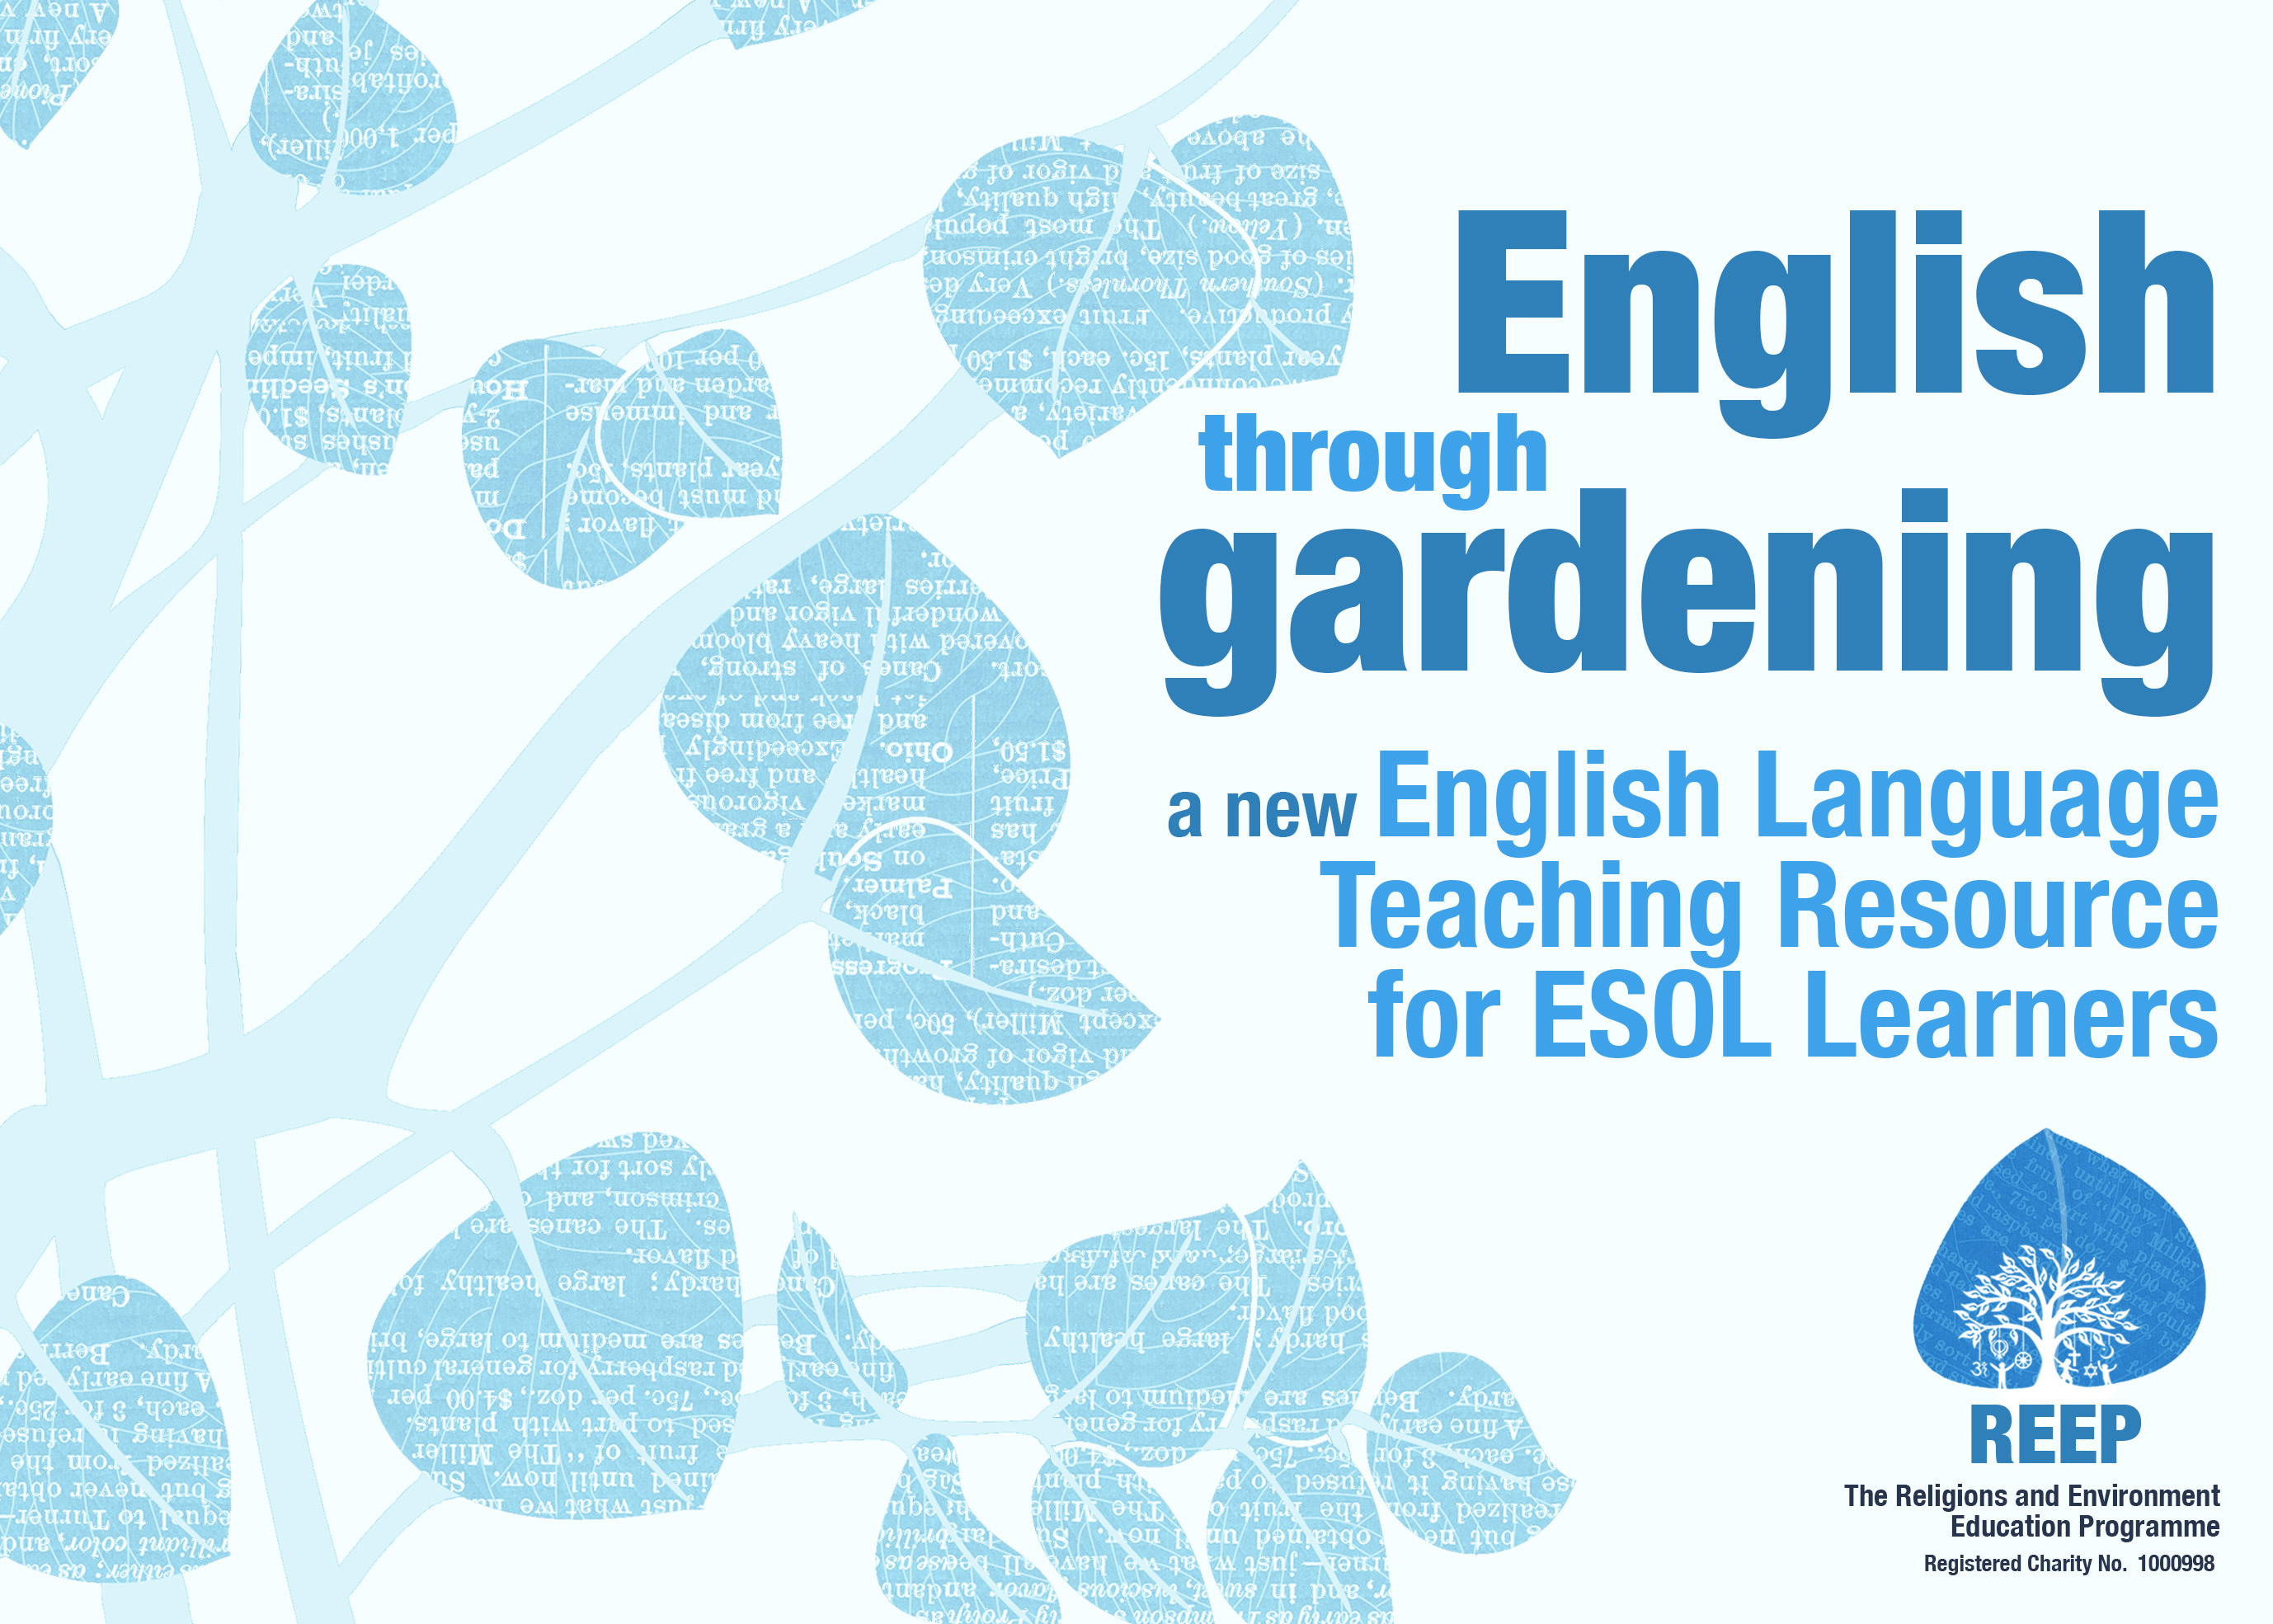 English through Gardening - A new English language teaching resource for EAL learners - by REEP, The Religions and Environment Education Programme